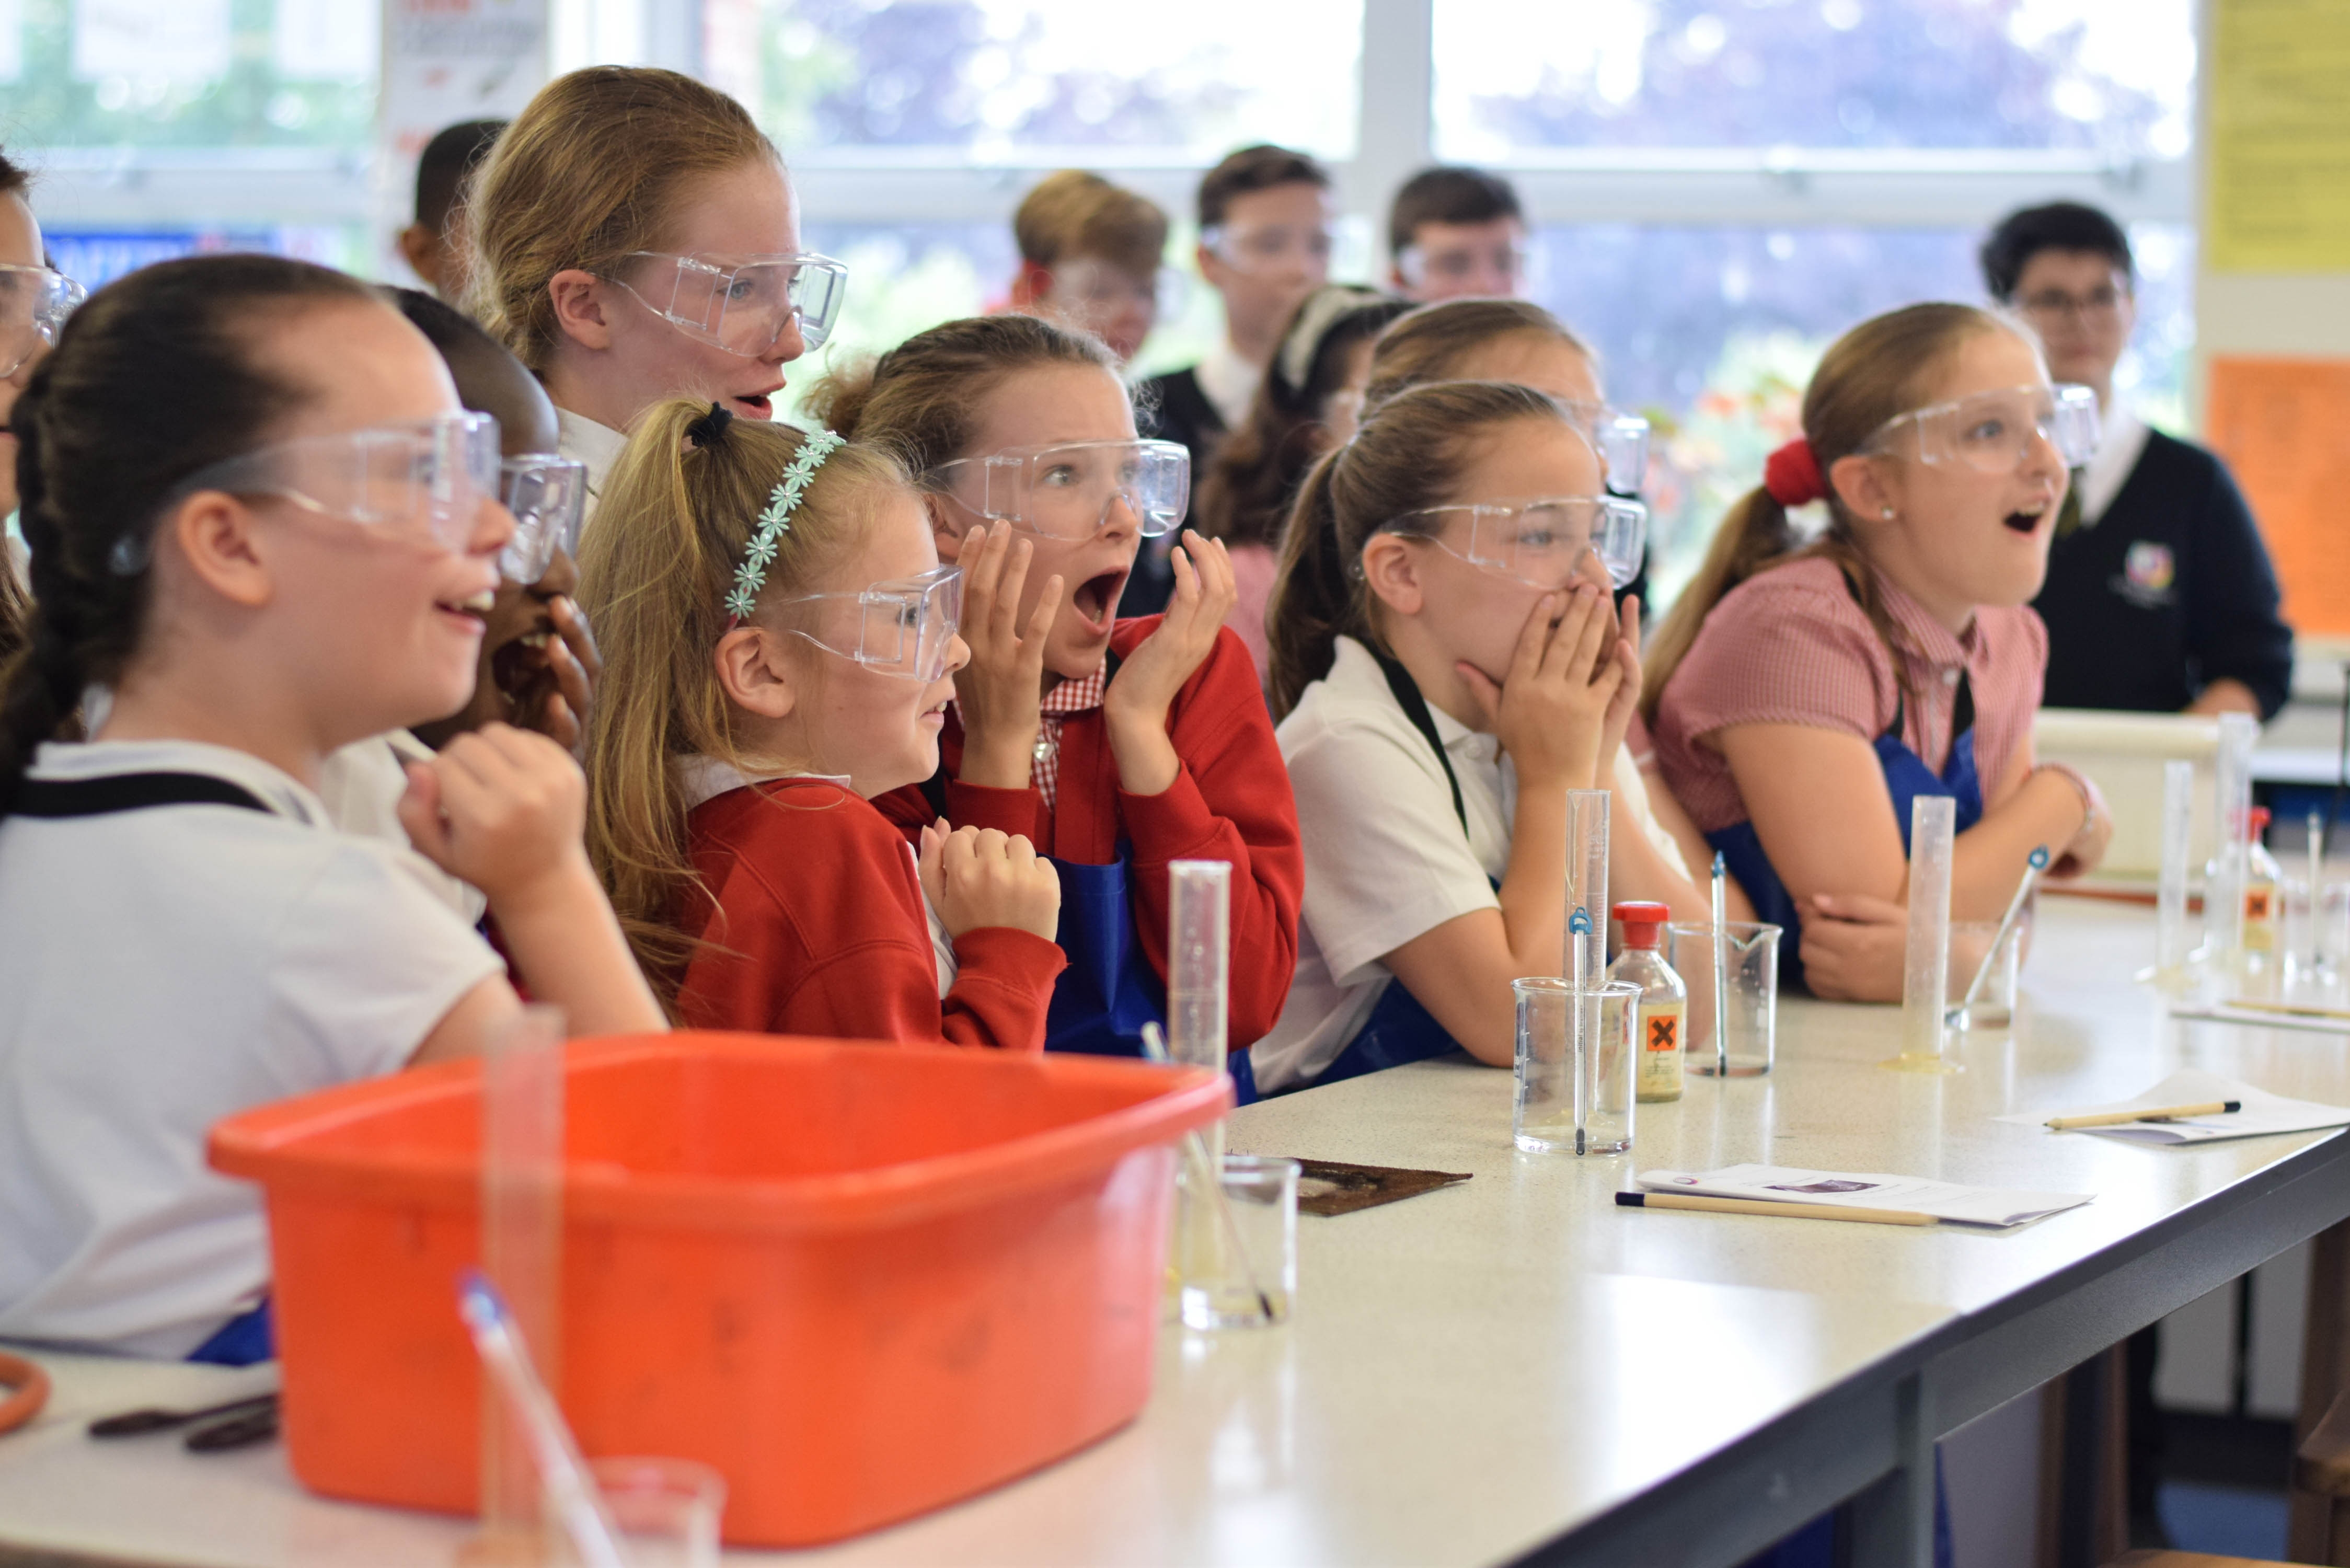 Education News | Year 5 pupils visit Winton for STEM Day | Andover & Villages